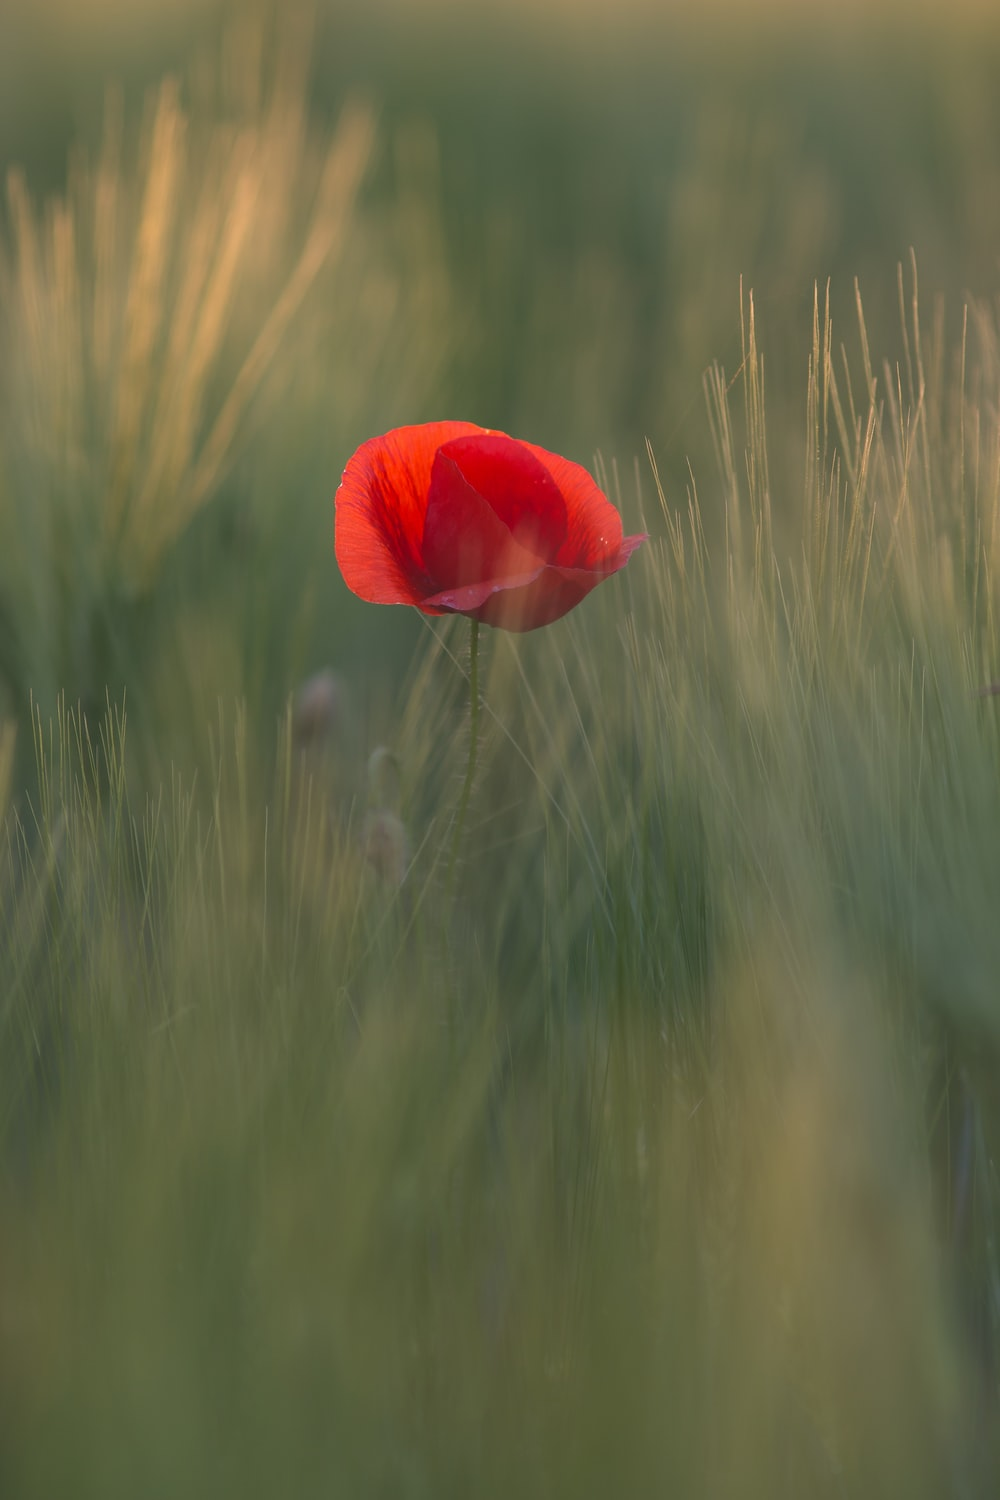 Poppy field pictures download free images on unsplash red poppy flower in bloom at daytime mightylinksfo